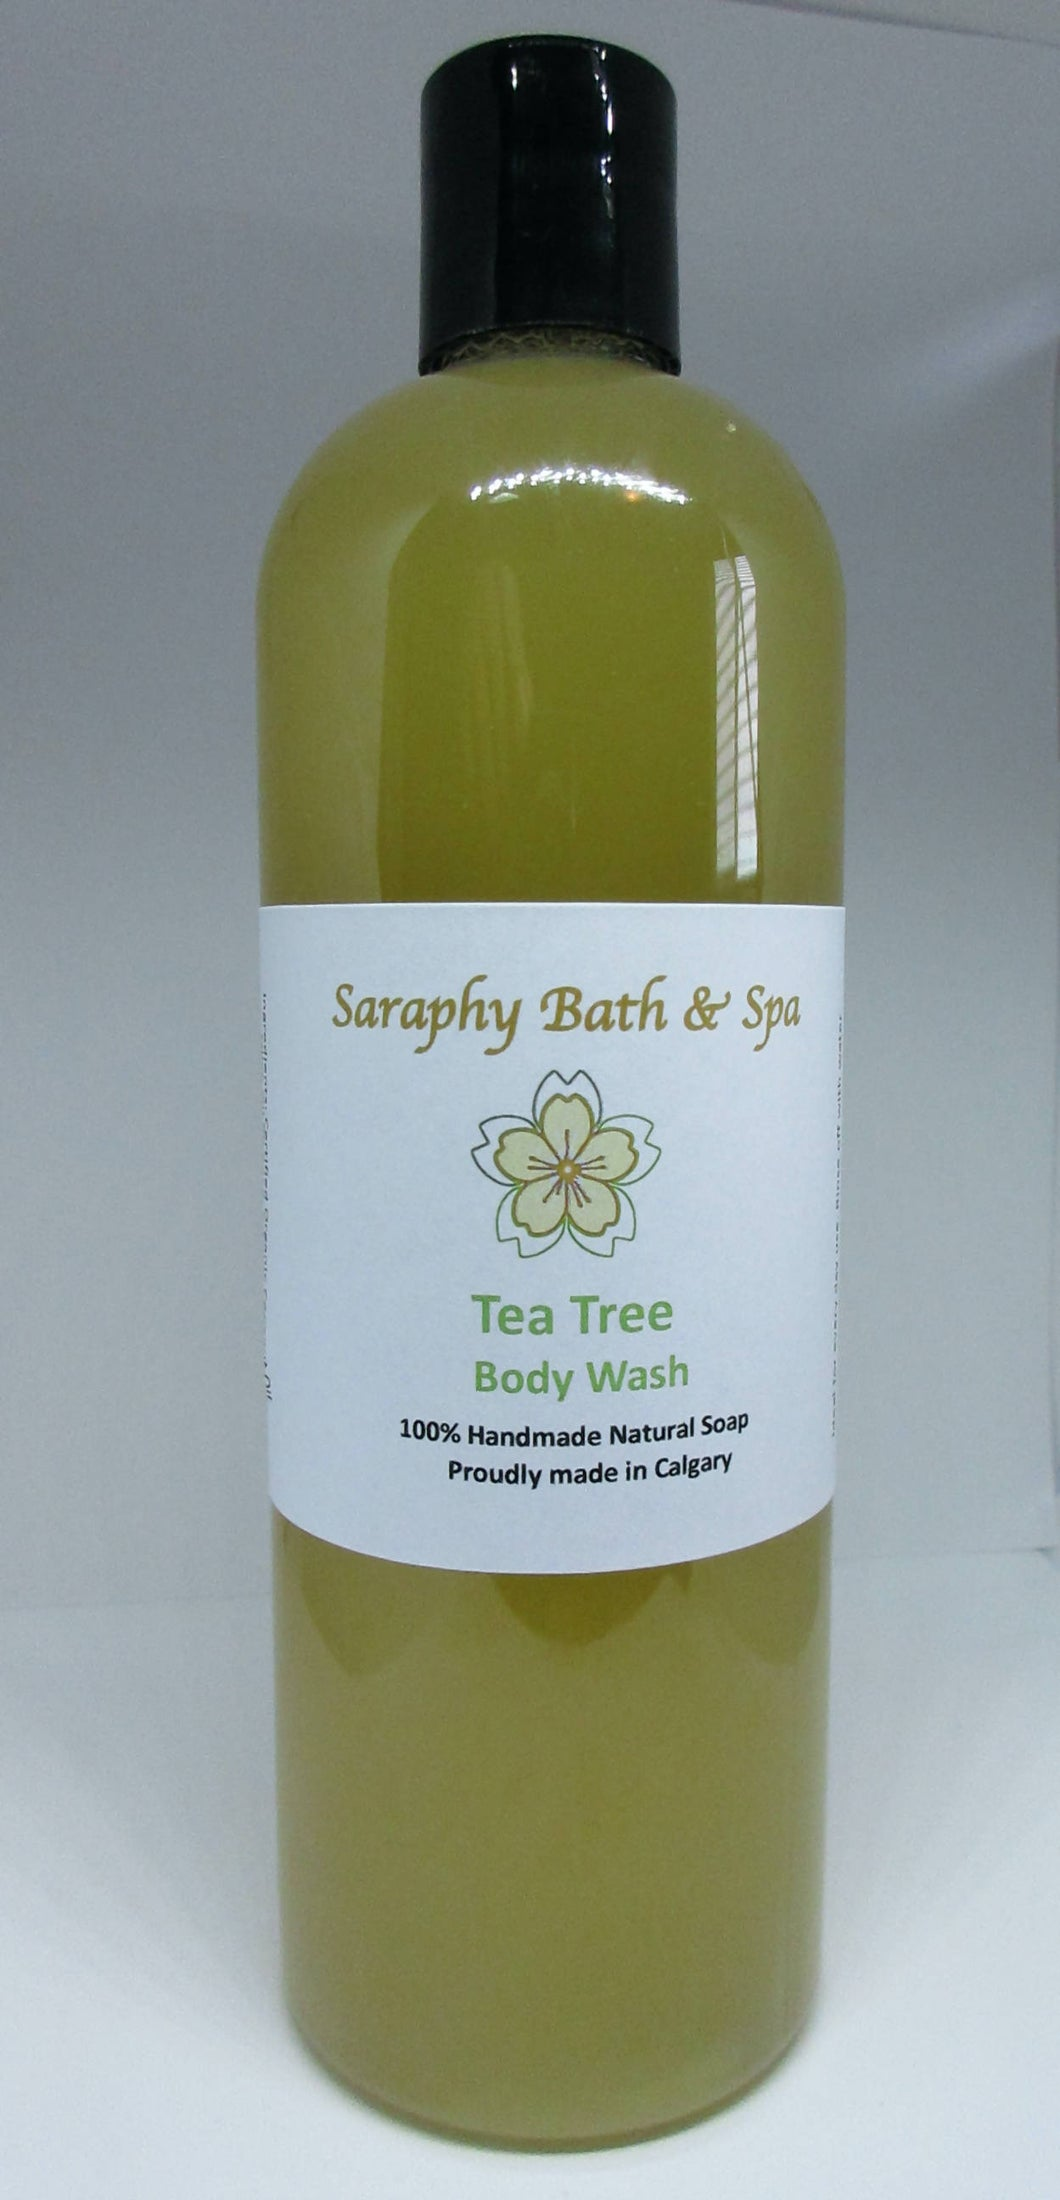 Tea Tree Body Wash